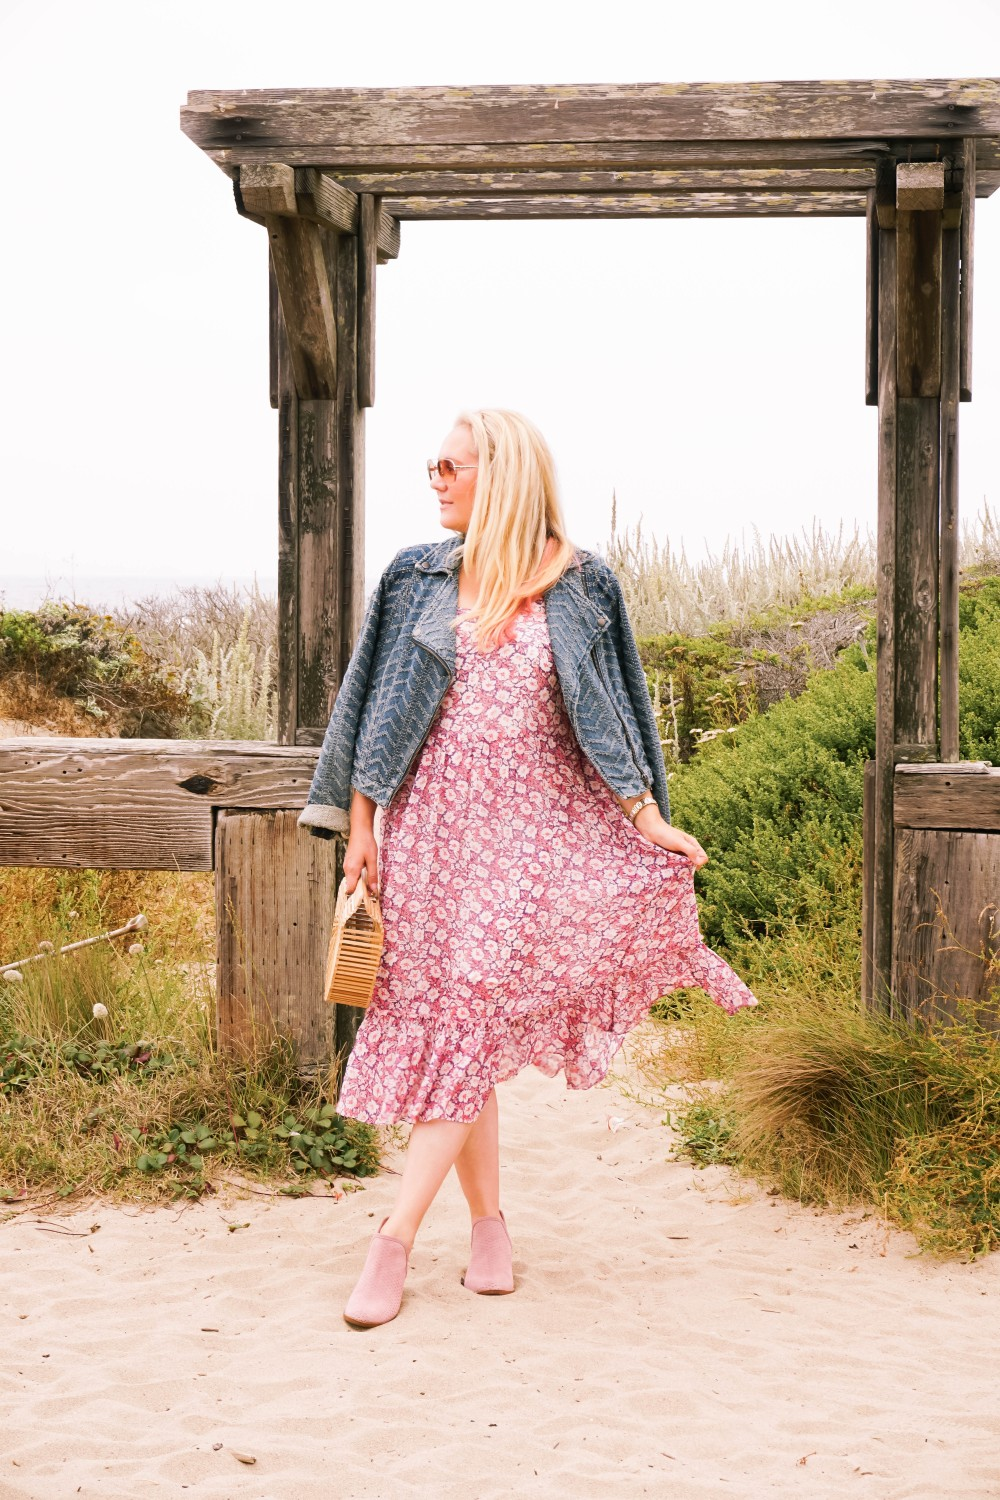 Breezy Beach Dress-Summer Floral Dress-Rebecca Minkoff-Outfit Inspiration-Visit Half Moon Bay-Denim Moto Jacket-Summer Style-Have Need Want 3